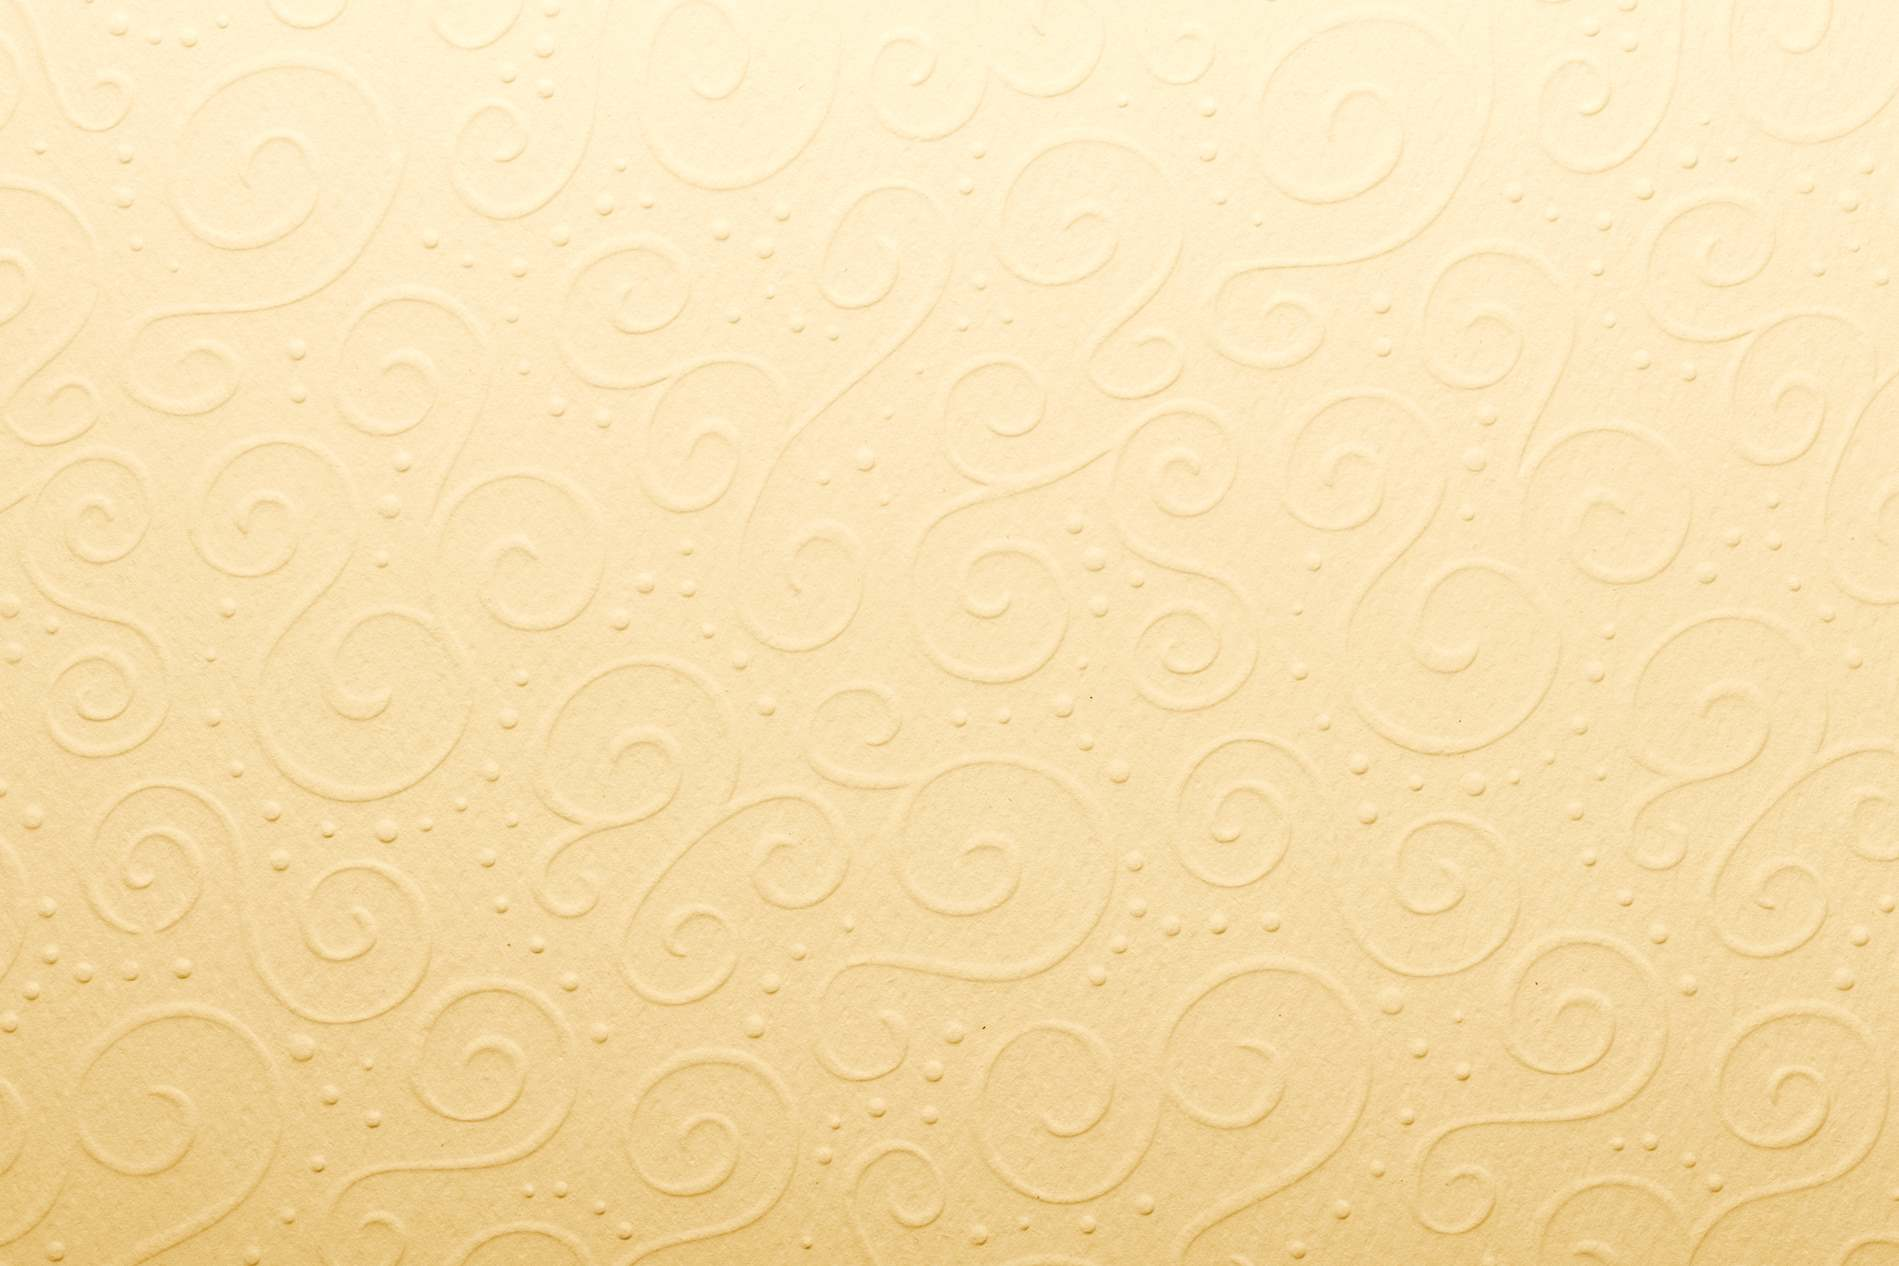 Yellow Vintage Paper Texture With Twirl Embossed Design ...